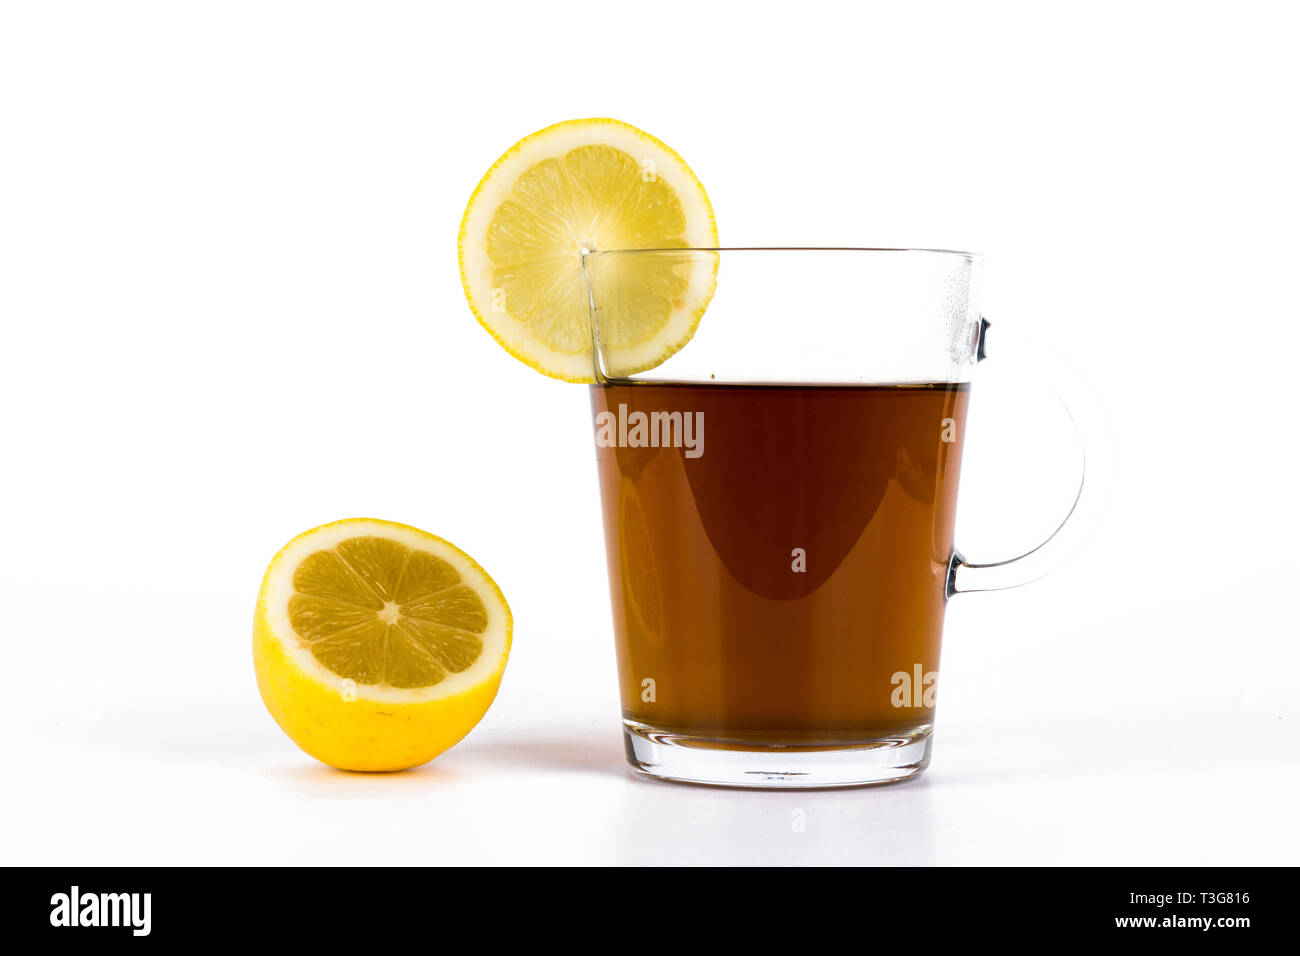 Slimming tea, cup with tea with lemon isolated on white background - Stock Image